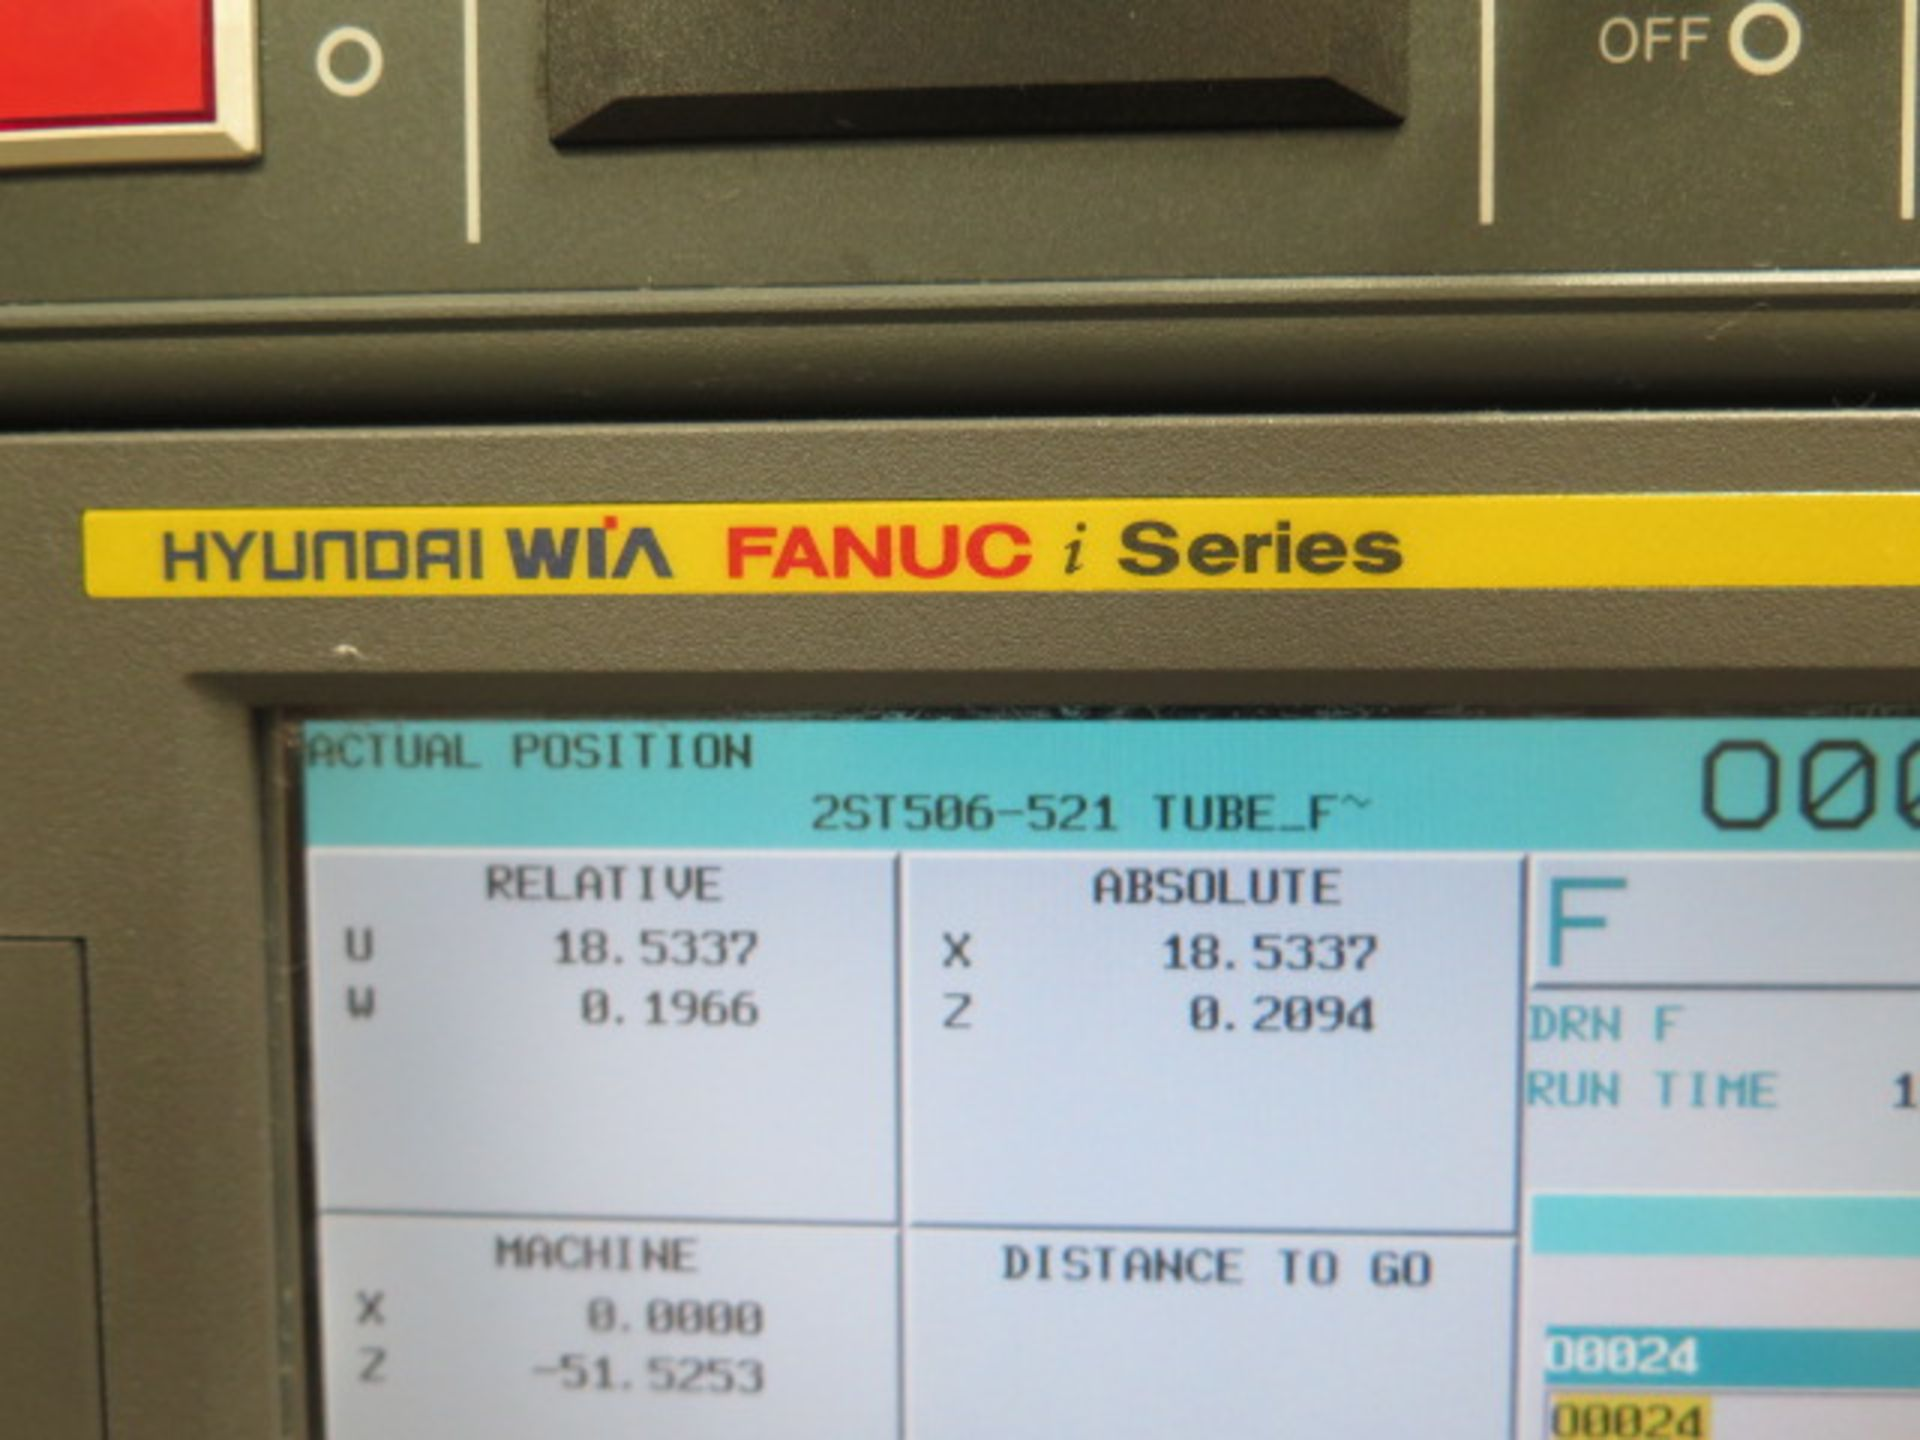 2017 Hyundai WIA L300LA CNC Turning Center s/n G3726-0108 w/ Fanuc i-Series Controls, SOLD AS IS - Image 5 of 18